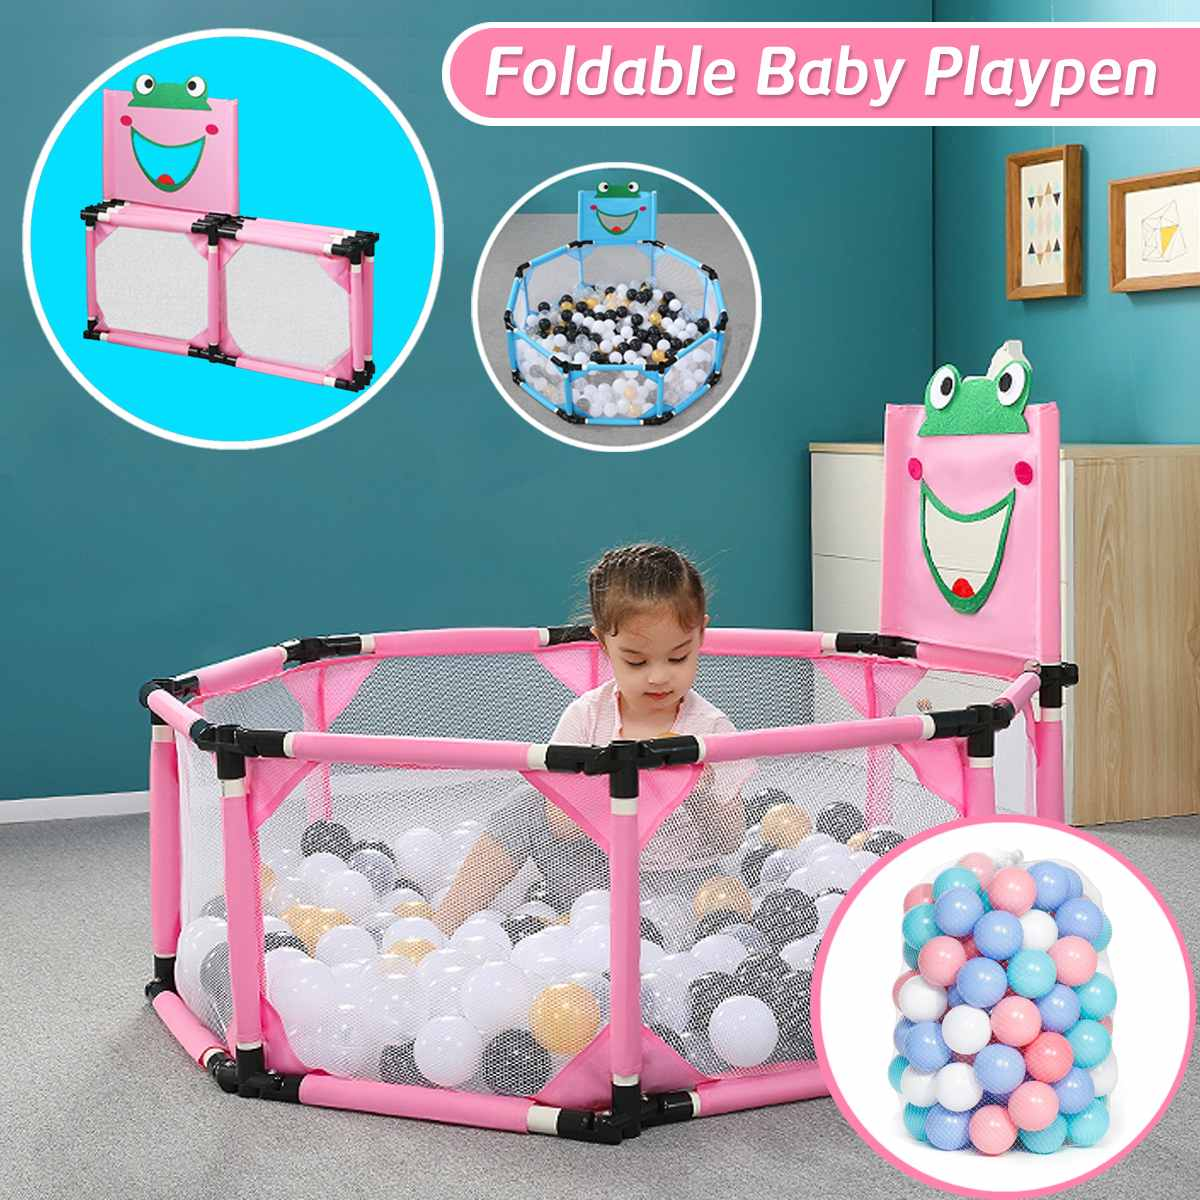 Kids Portable Baby Playpen Folding Fence For Newborn Baby Pool Children's Playpen Carton Game Tent Infant Ball Pool Baby Hurdle